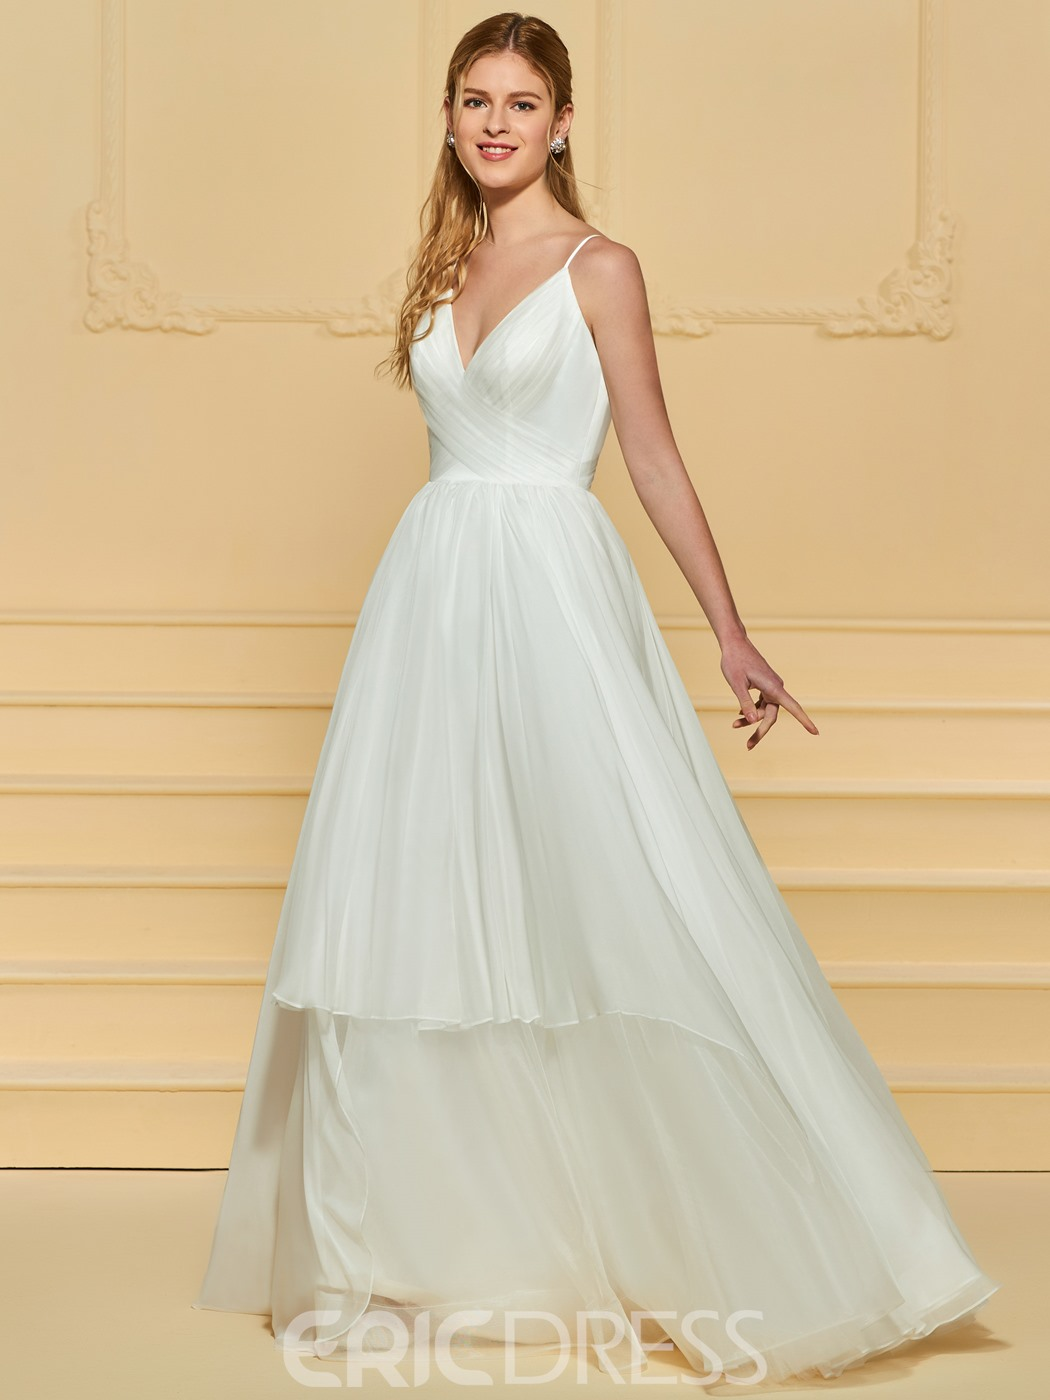 Ericdress Spaghetti Straps A Line Wedding Dress